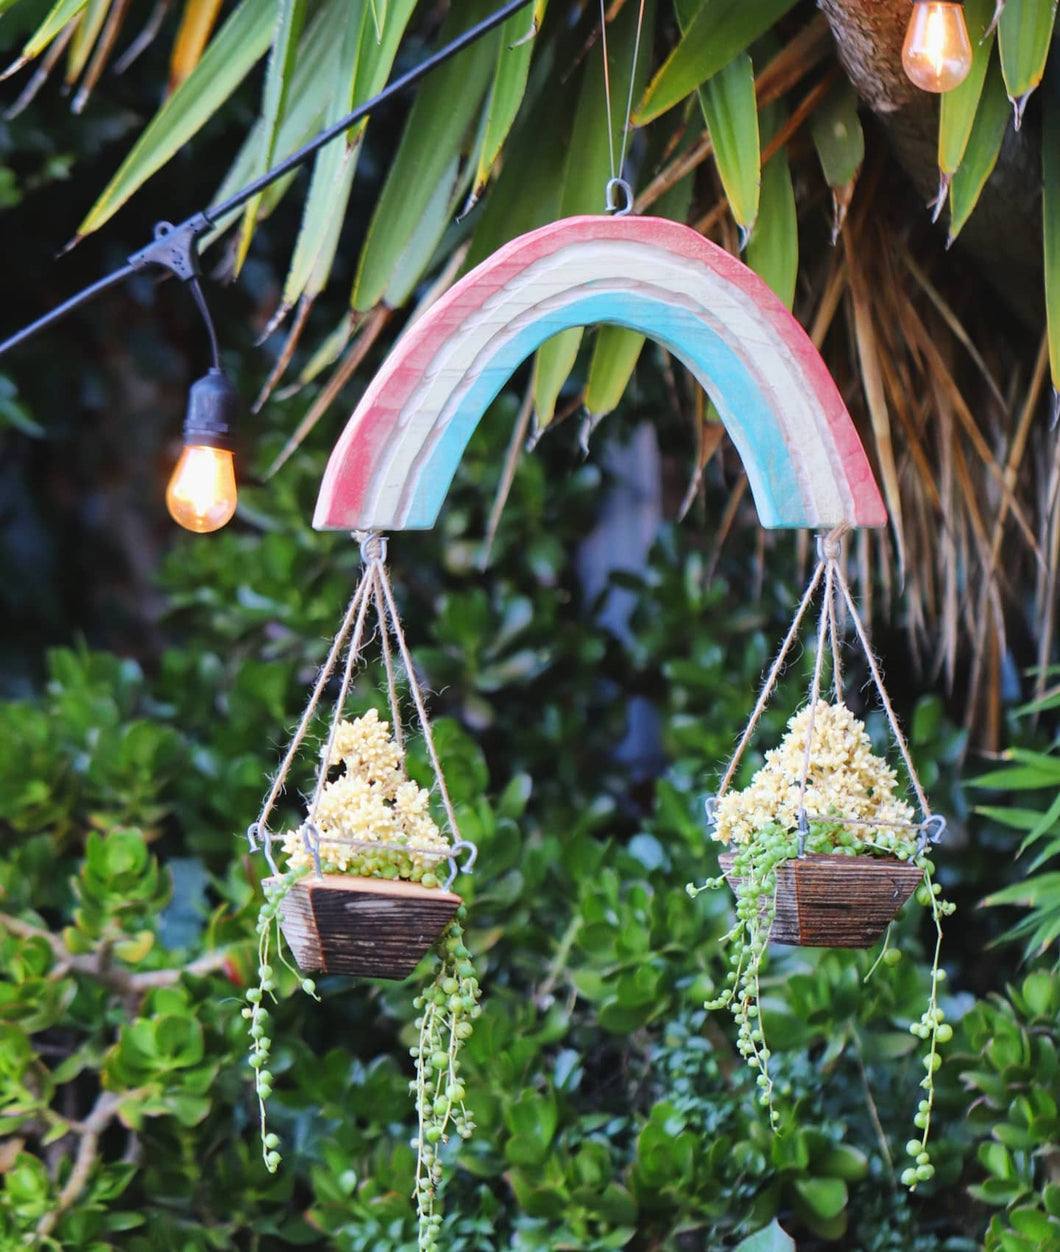 Rainbow wall hanging with planters